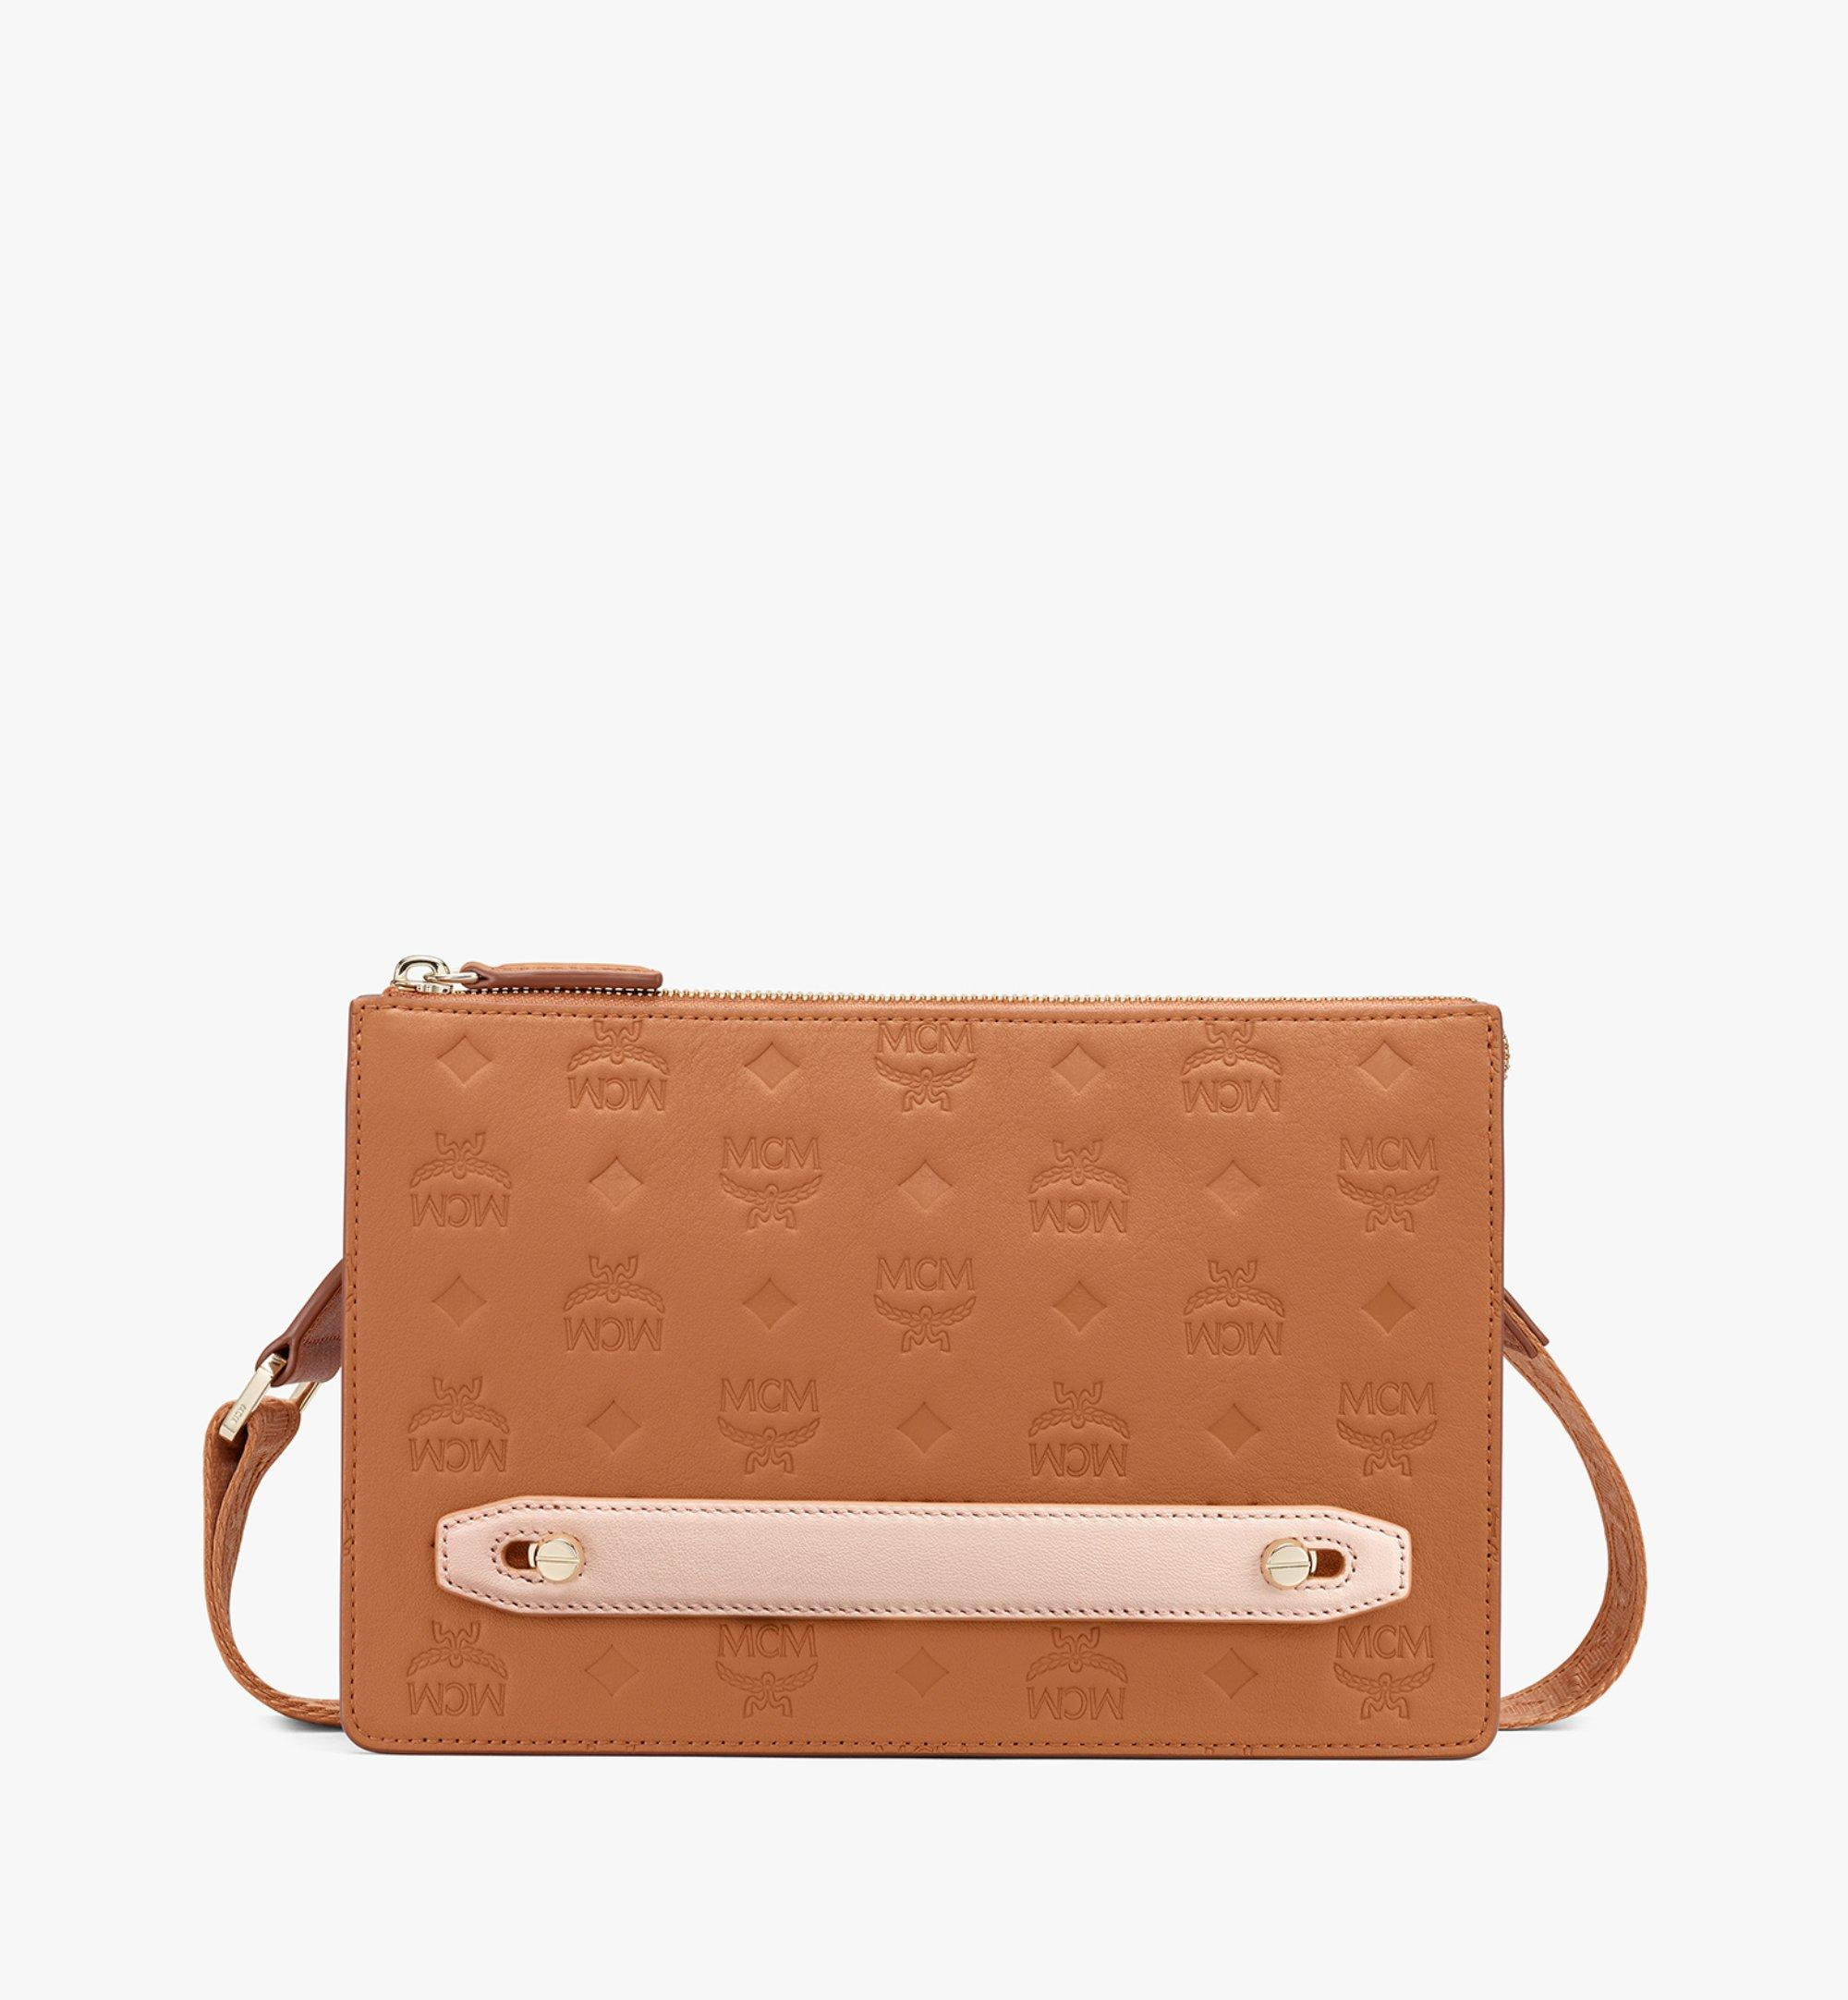 Mcm Klara Crossbody Pouch in Monogram Leather